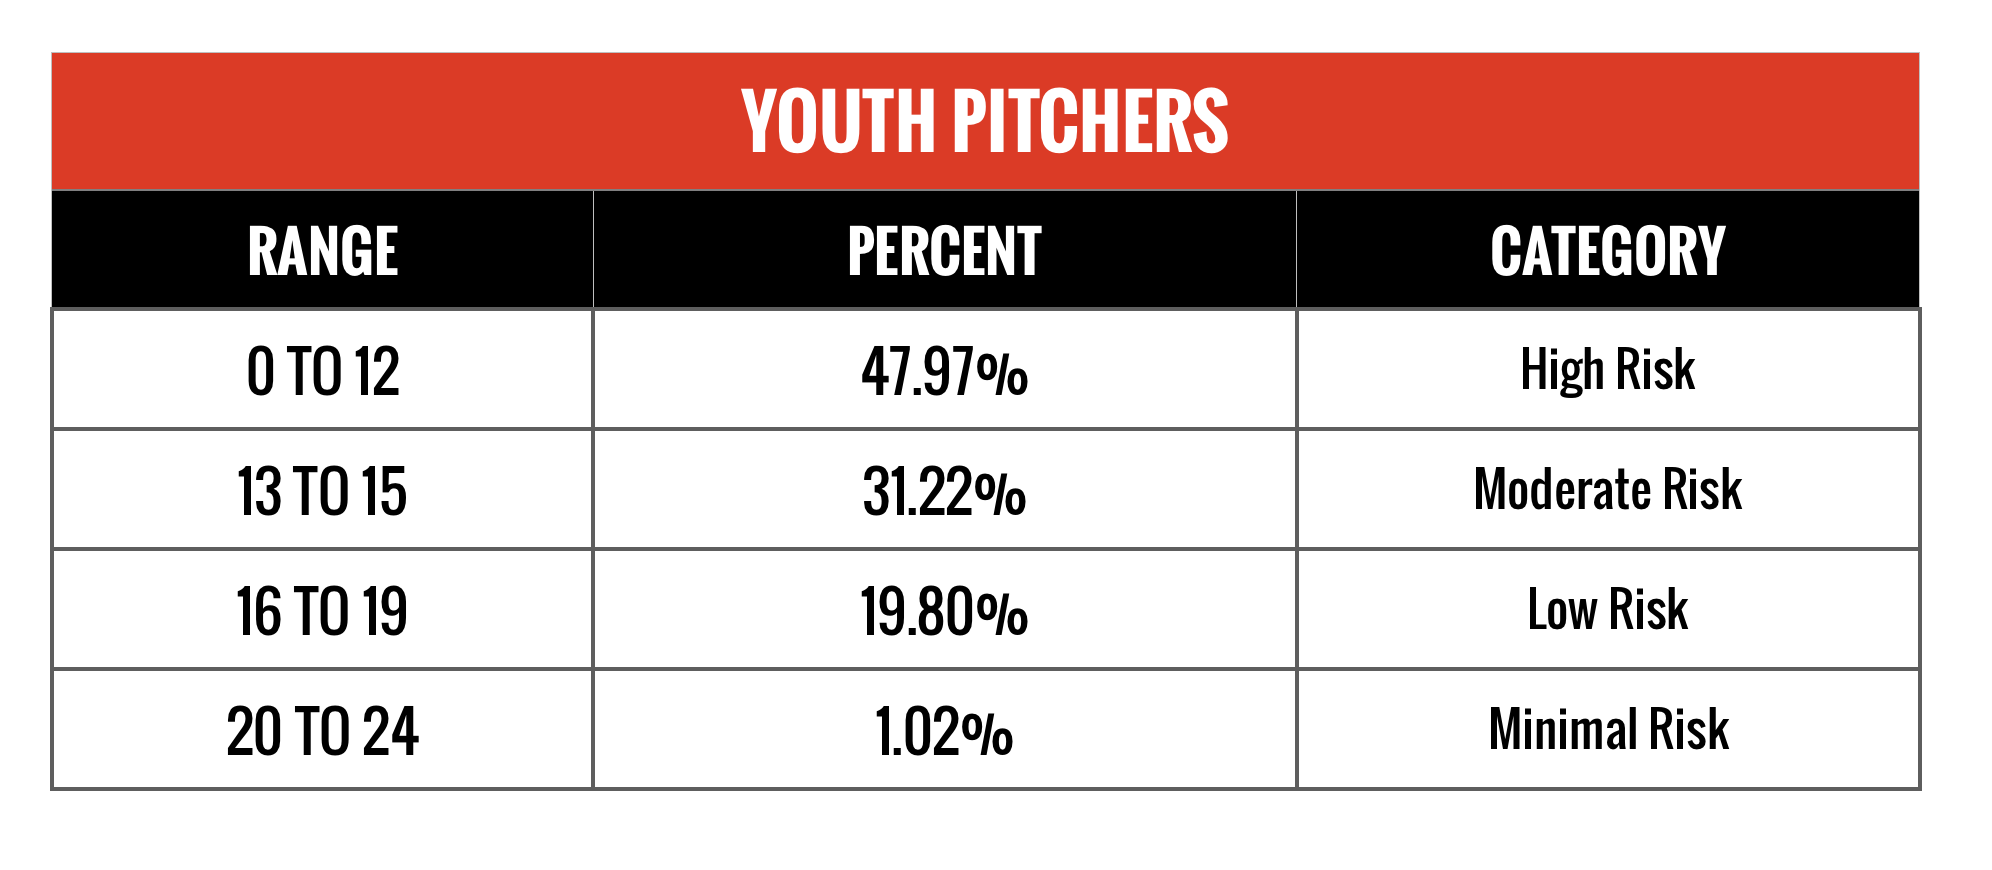 Table categorizing over 500 youth pitchers in categories of risk